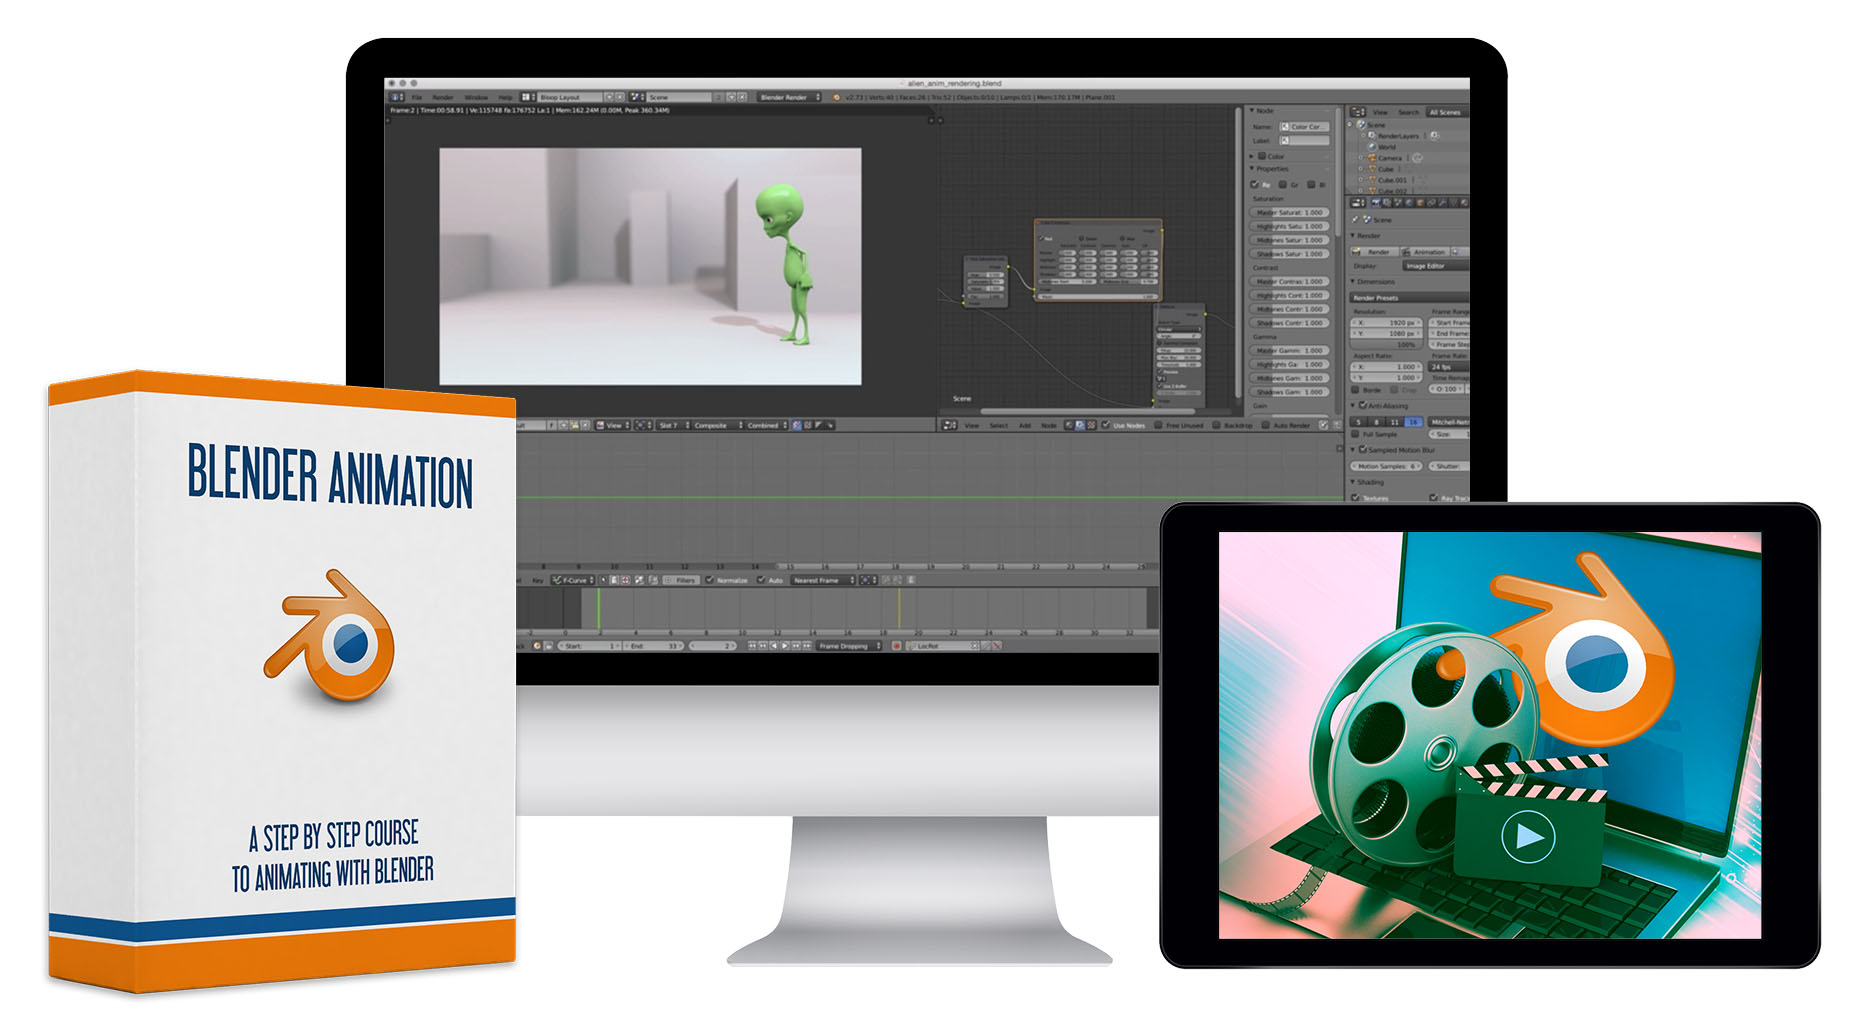 Blender Animation Course - 35 HD Video Lessons